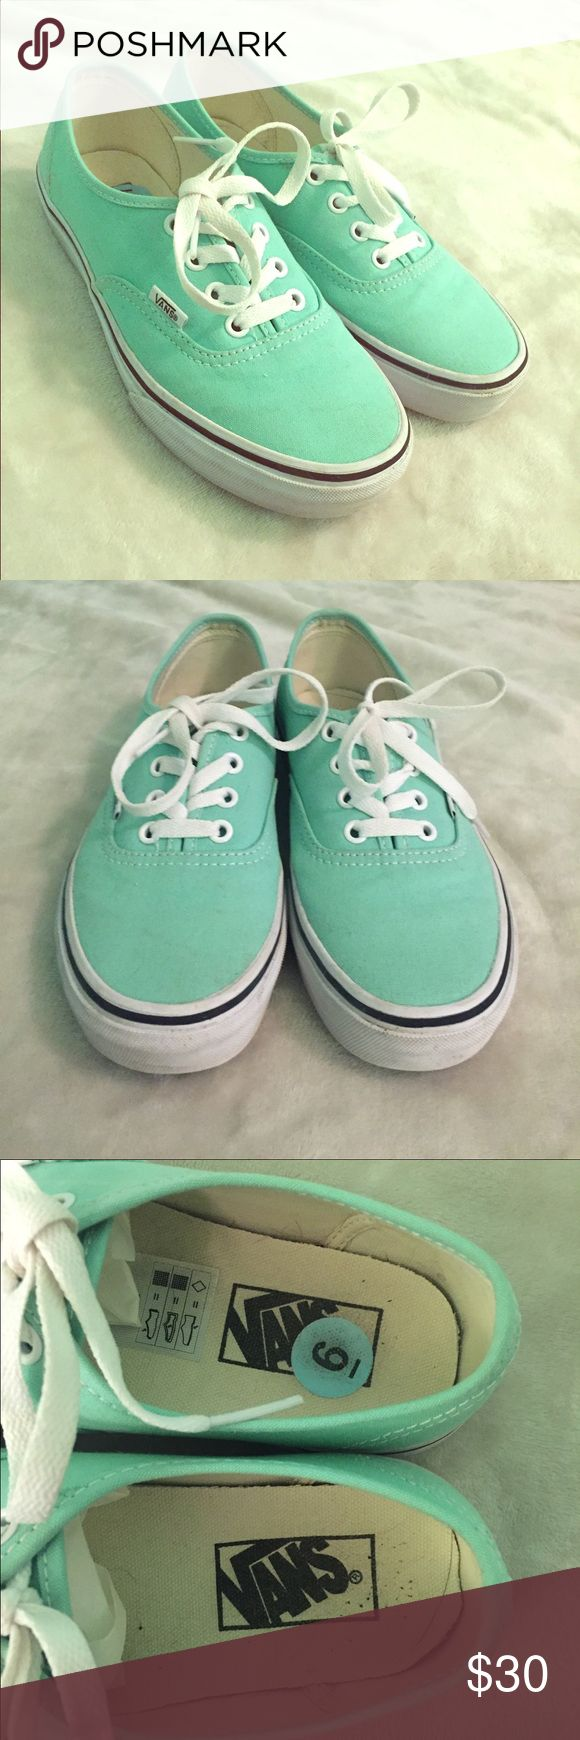 ✨Mint Green Vans✨ Beautiful mint green Vans💎 In excellent condition, really no stains or marks💎Worn once💎Size 6 womens💎Bottoms look brand new, no scuffs or signs of wearing💎Bright white laces💎Authentic💎I accept all reasonable offers💎I love bundles so feel free💎Let's Shop and have some fun💎Feel free to ask any questions, I will respond ASAP💎 Vans Shoes Flats & Loafers